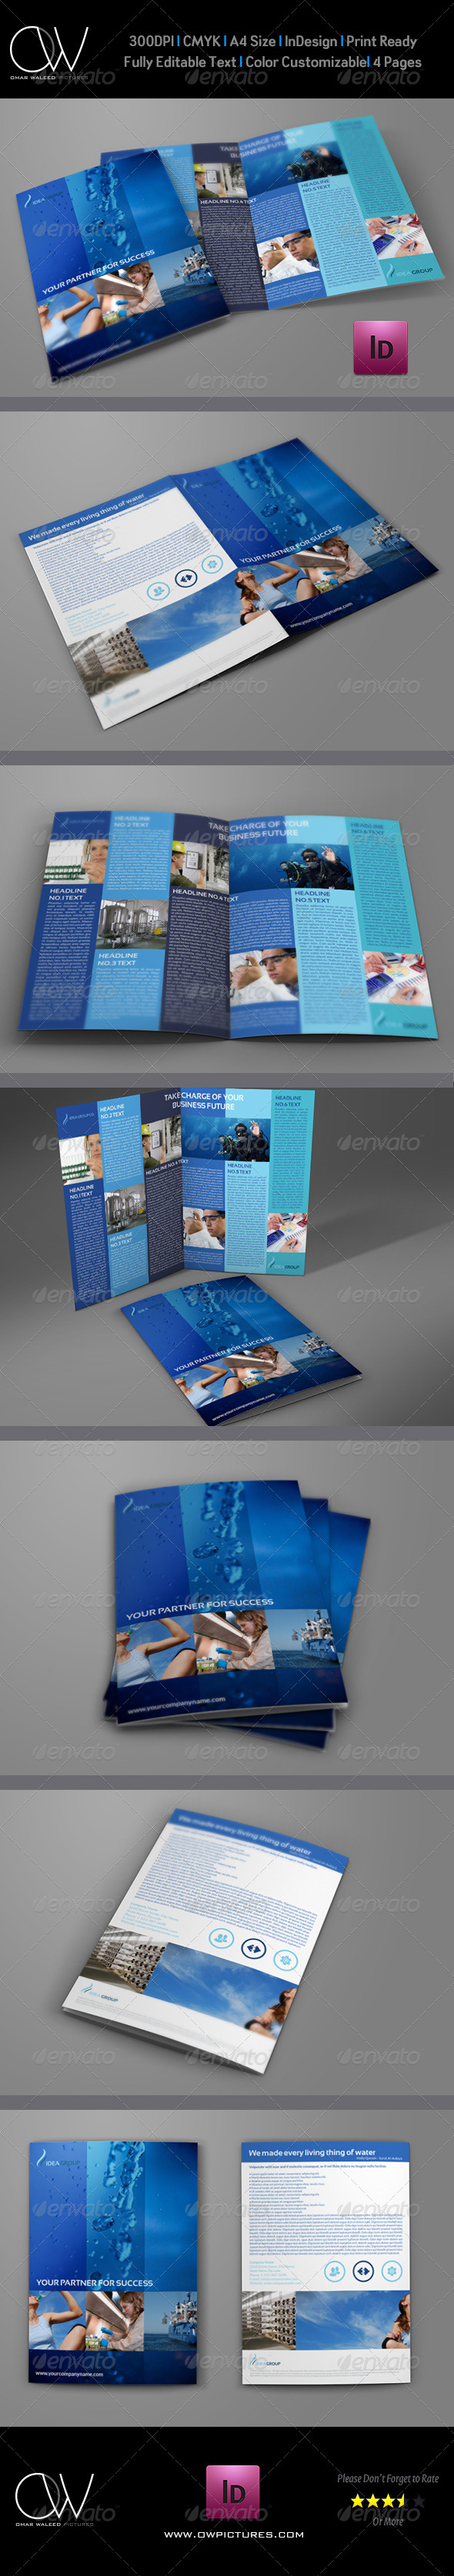 GraphicRiver Company Brochure Bi-Fold Template Vol 16 6570715